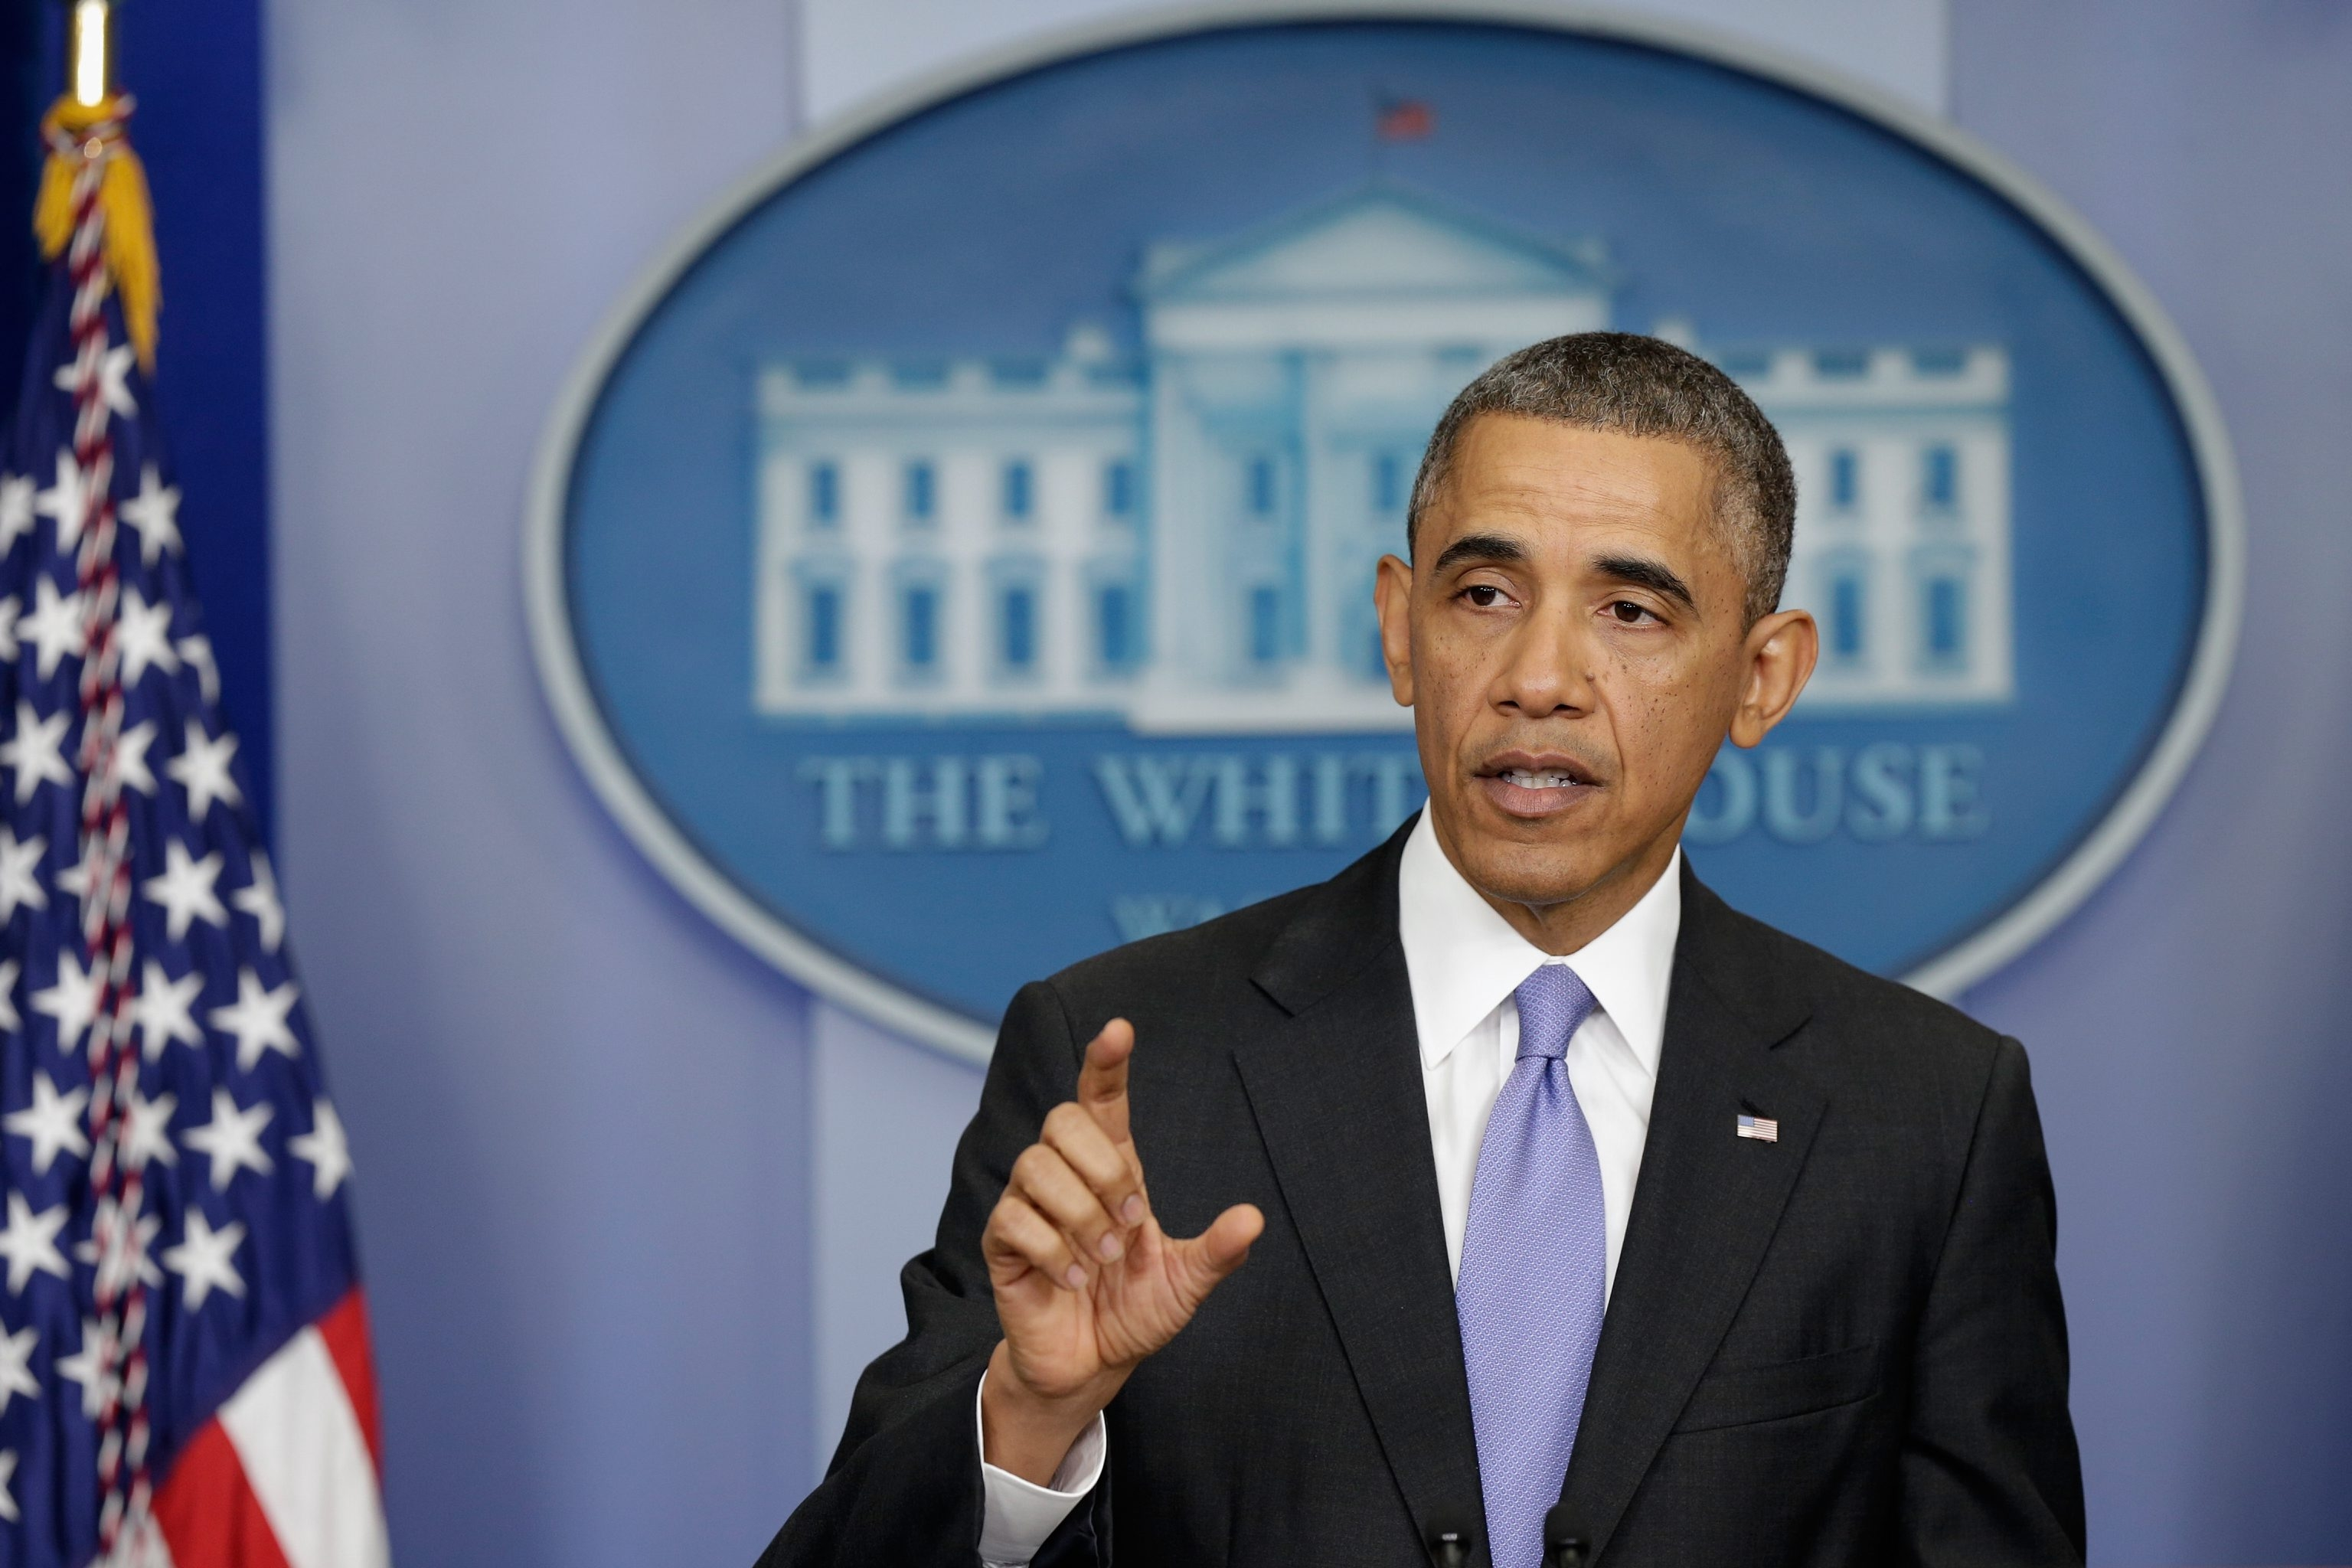 President Obama aims for extension of a year on policies being canceled.